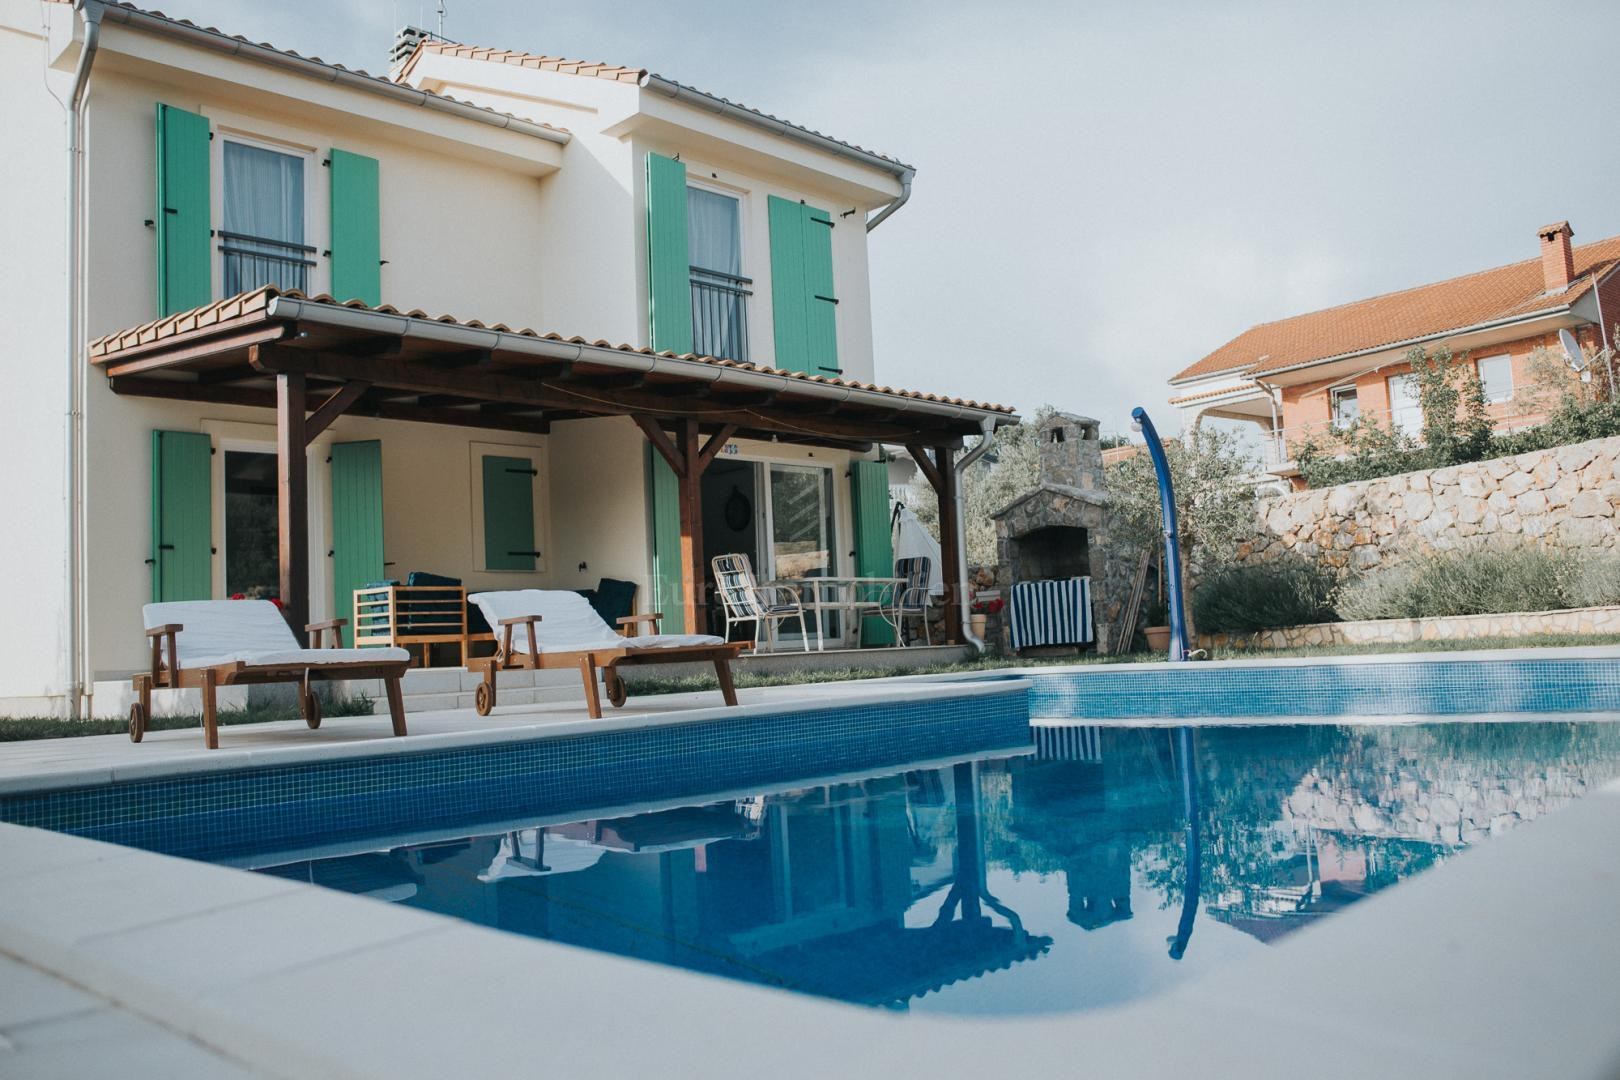 Charming House With Swimming Pool Categorized For Rent Haus